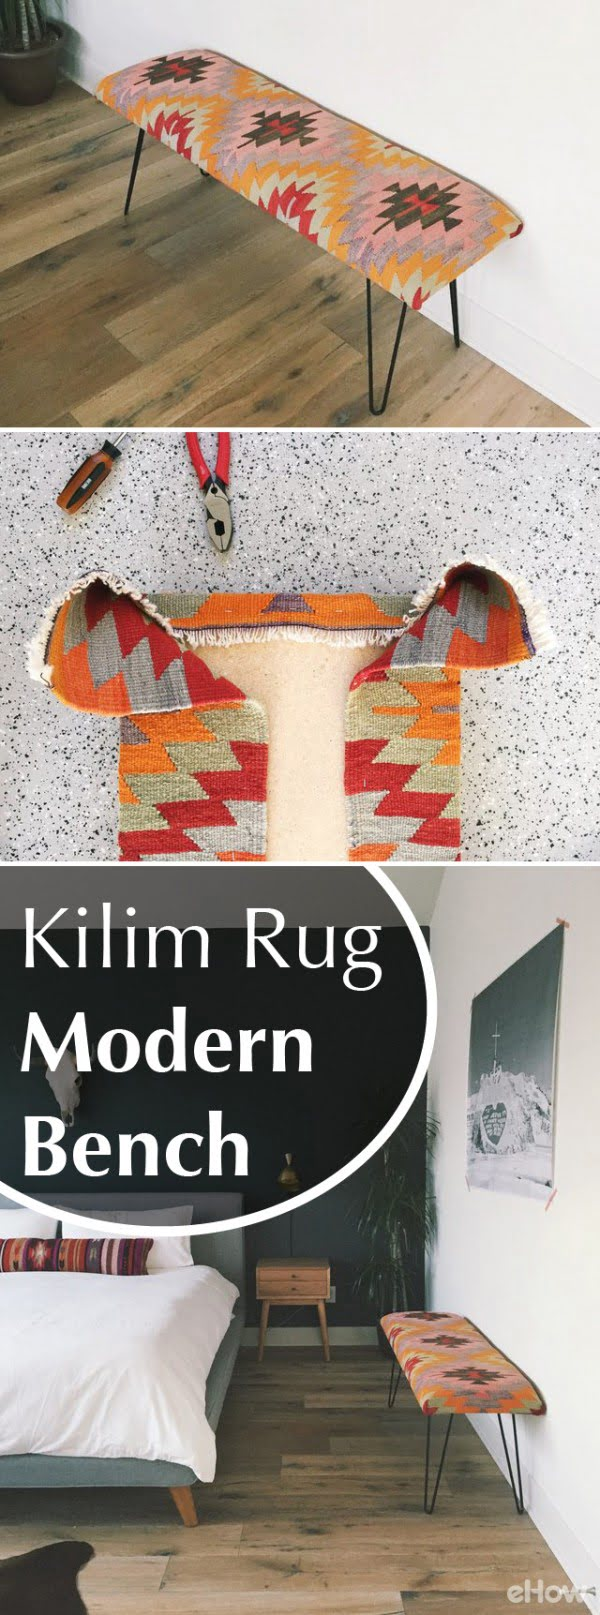 Check out the tutorial on how to make a DIY kilim rug bench